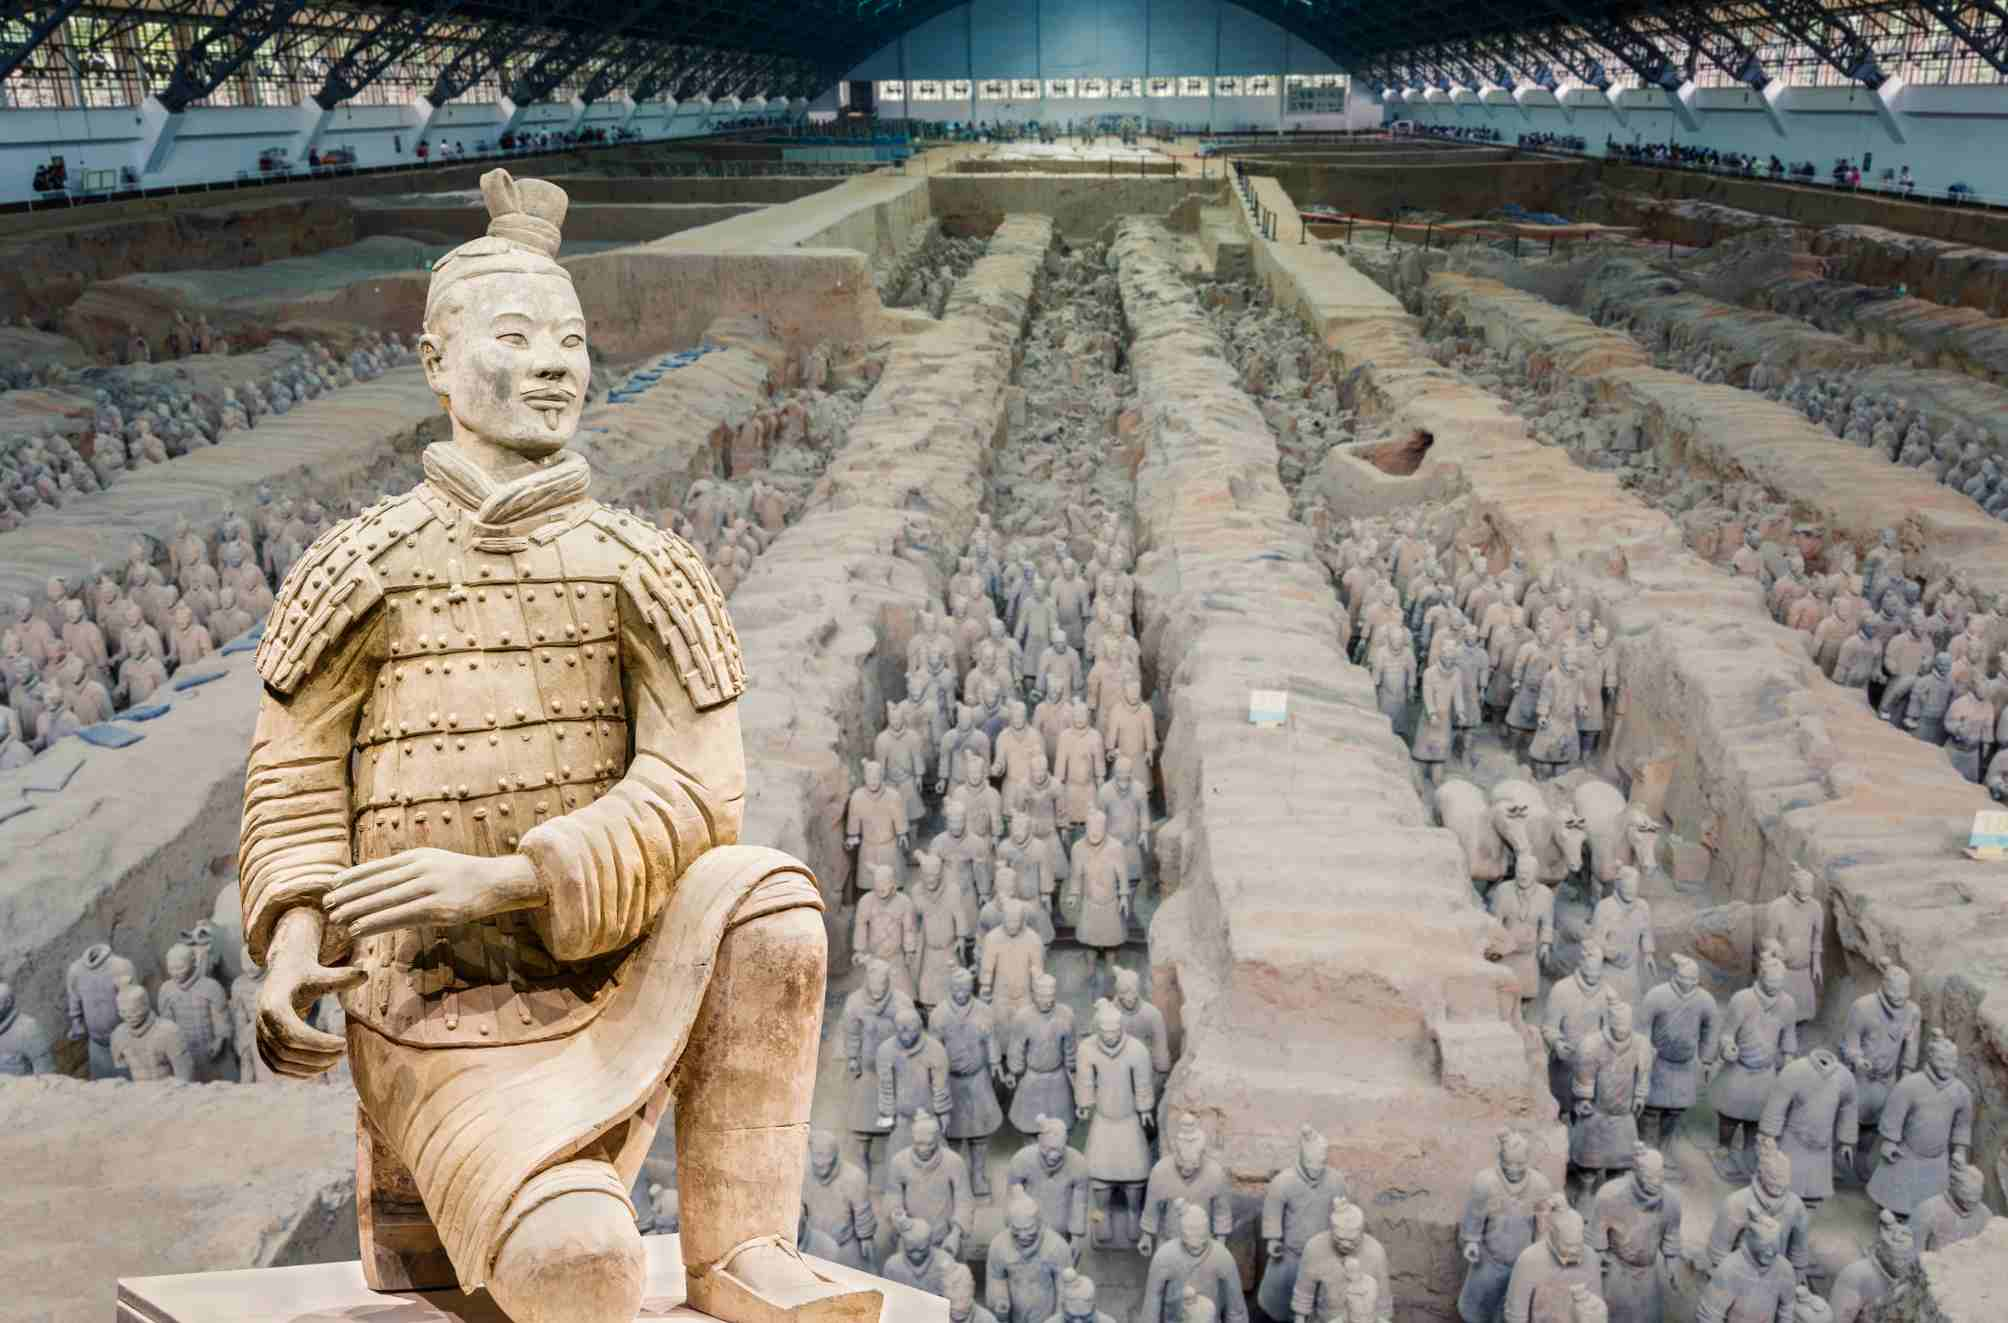 Terracotta army soldiers in Xian China